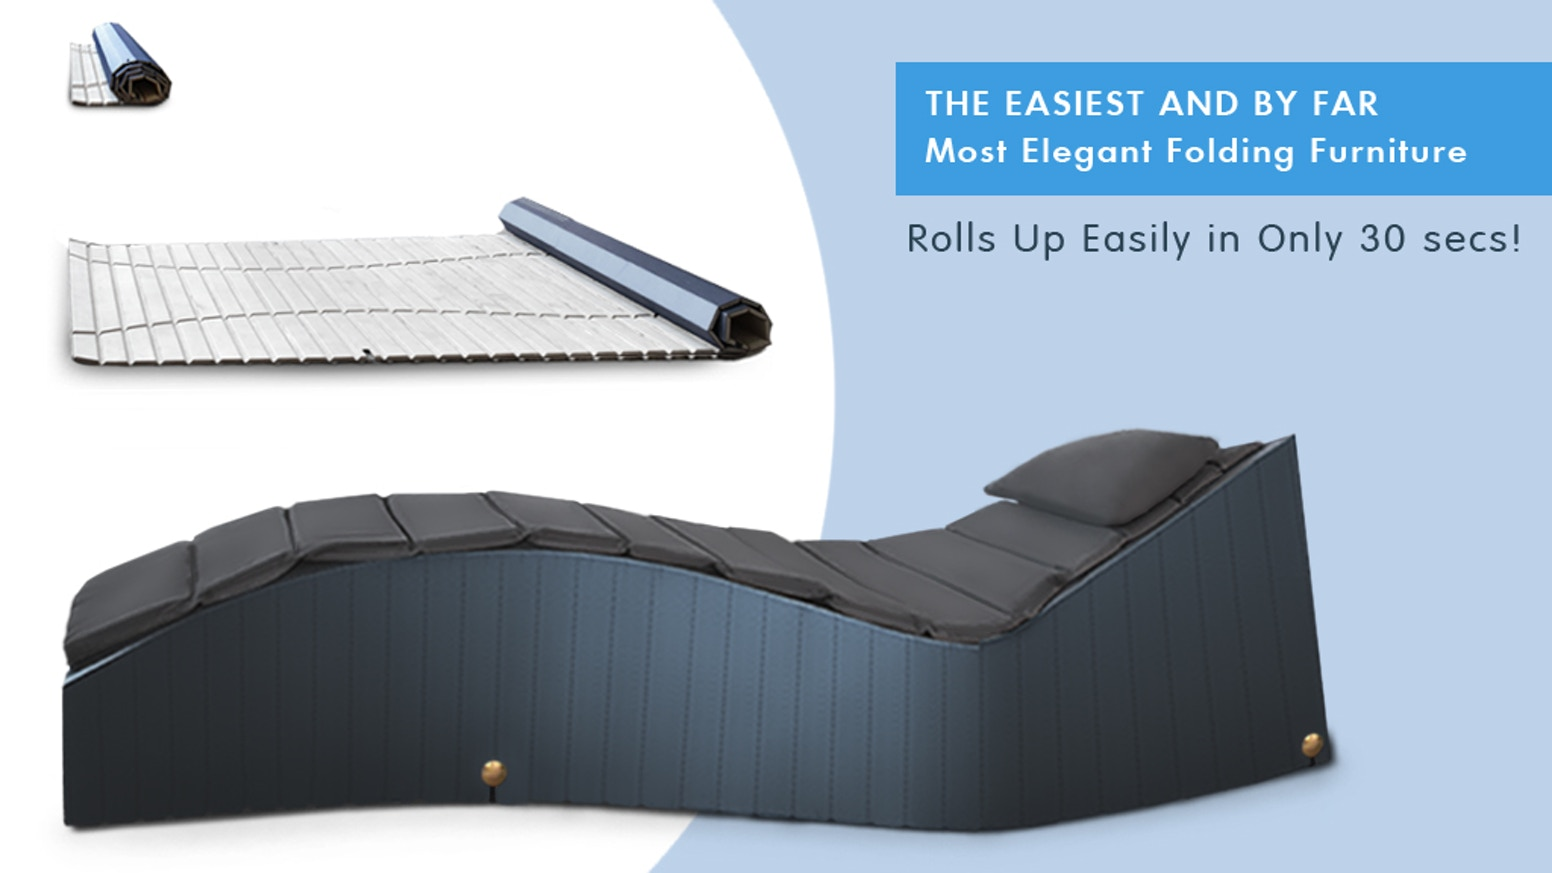 Luxurious Design Lounger with Everyday Practicality.  Featuring a unique ergonomic design that saves space and is easy to set up.